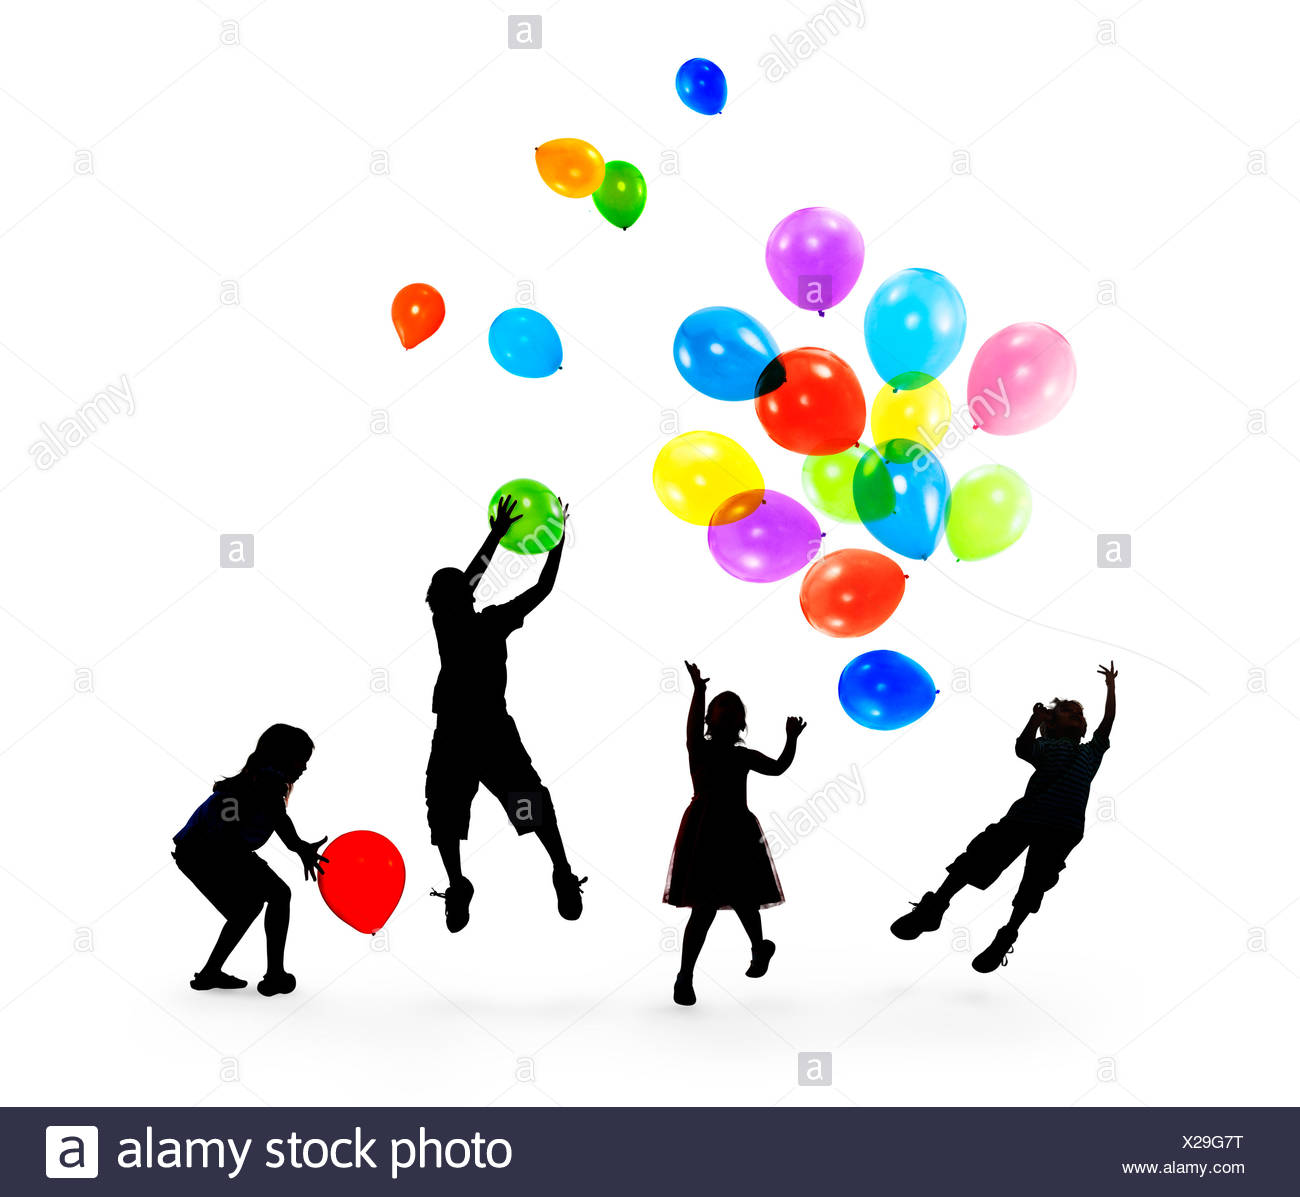 1300x1197 Happy Silhouettes Of Children Playing Balloons Together Stock